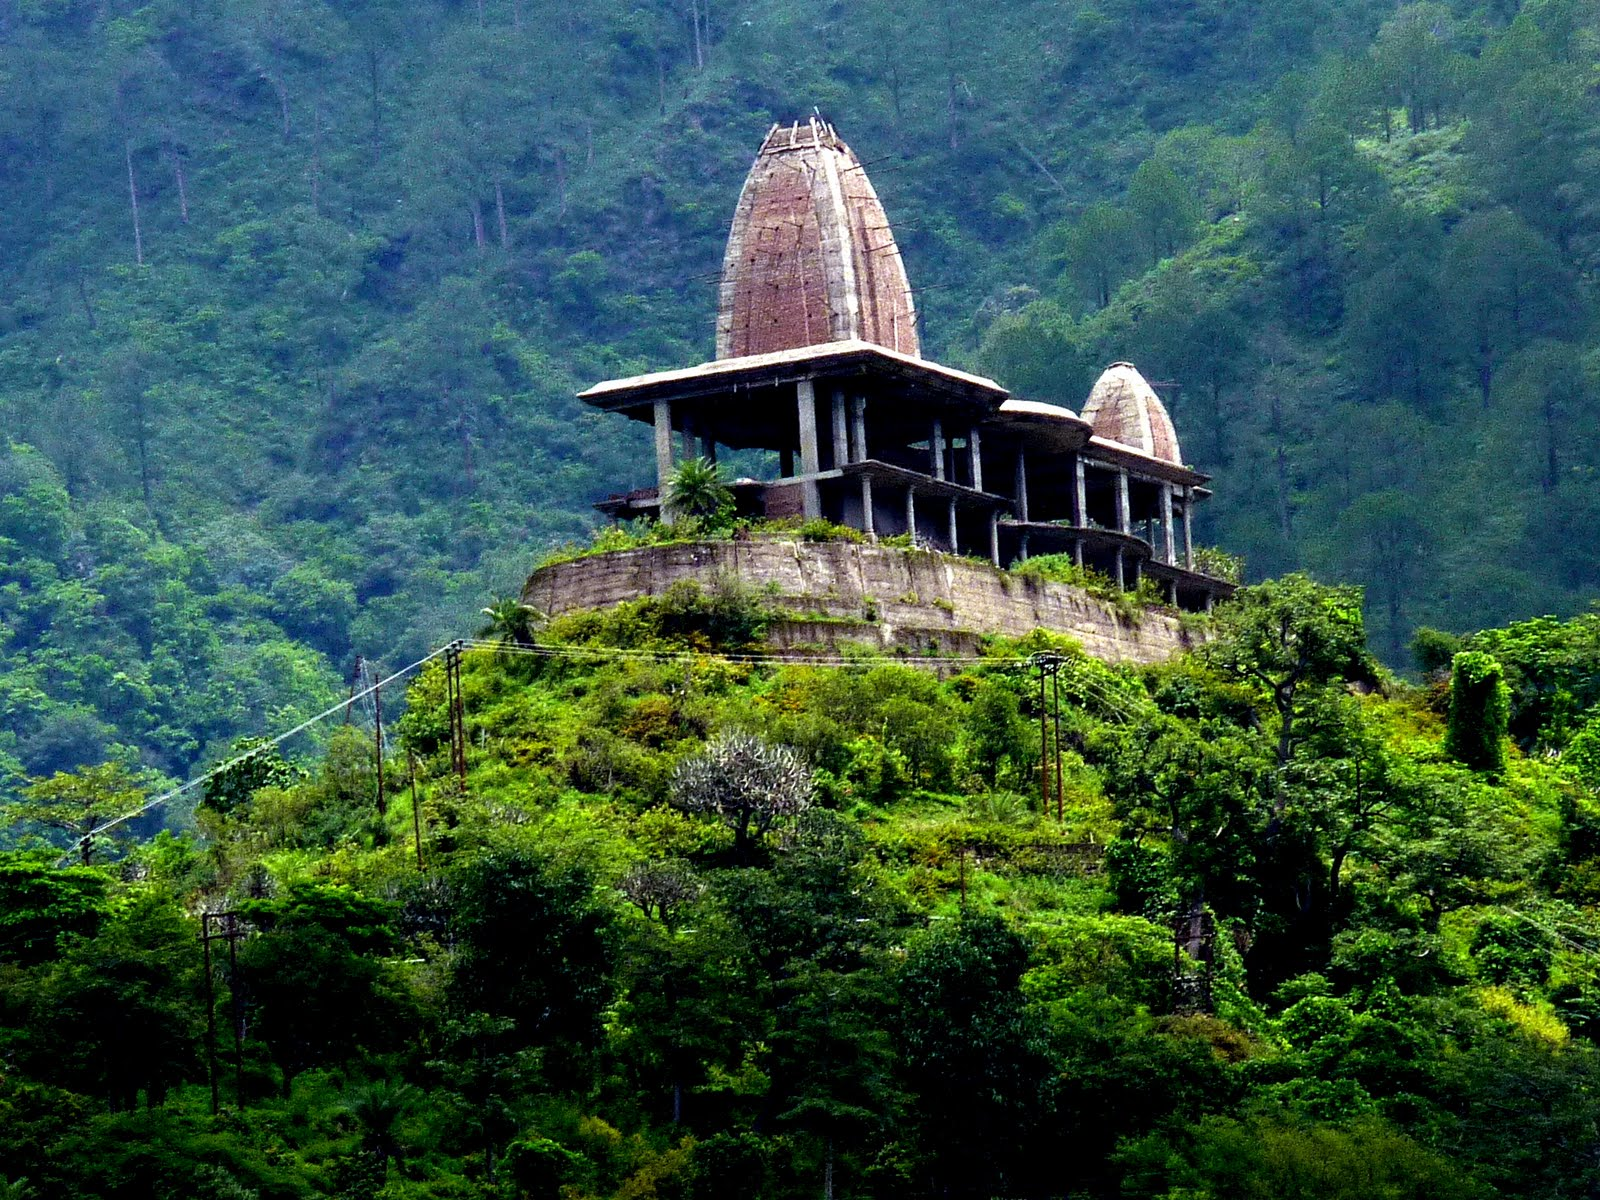 essay on vaishno devi temple Hindu temple - vaishno devi temple: vaishno devi temple the shrine of mata vaishno devi is one of the most visited pilgrim sites in india situated at a height of 5, 300 ft, the site is located inside a cave in a hill.